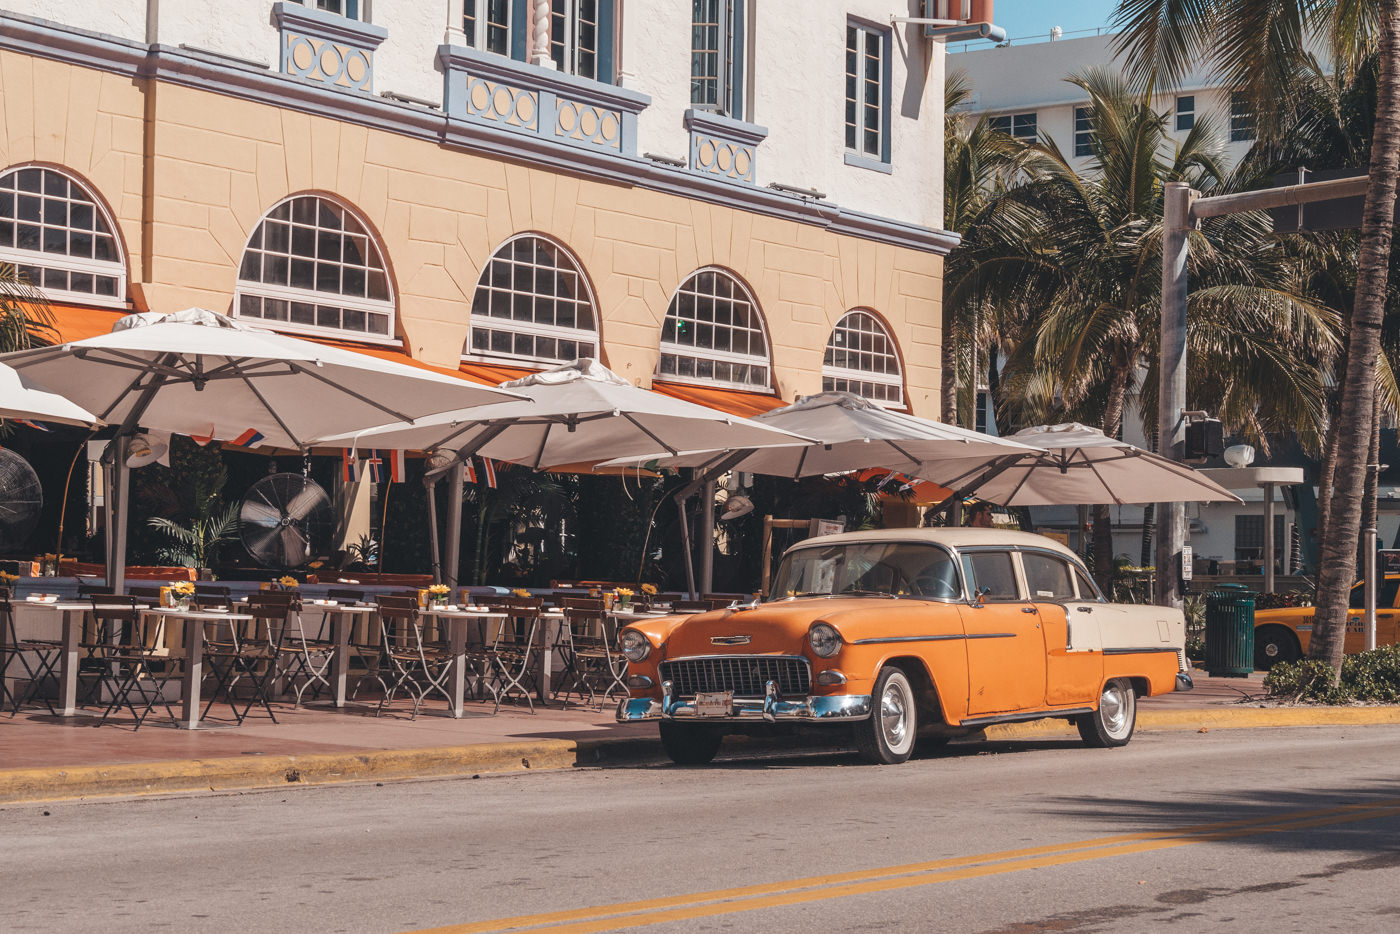 Oldtimer Auto am Ocean Drive in Miami